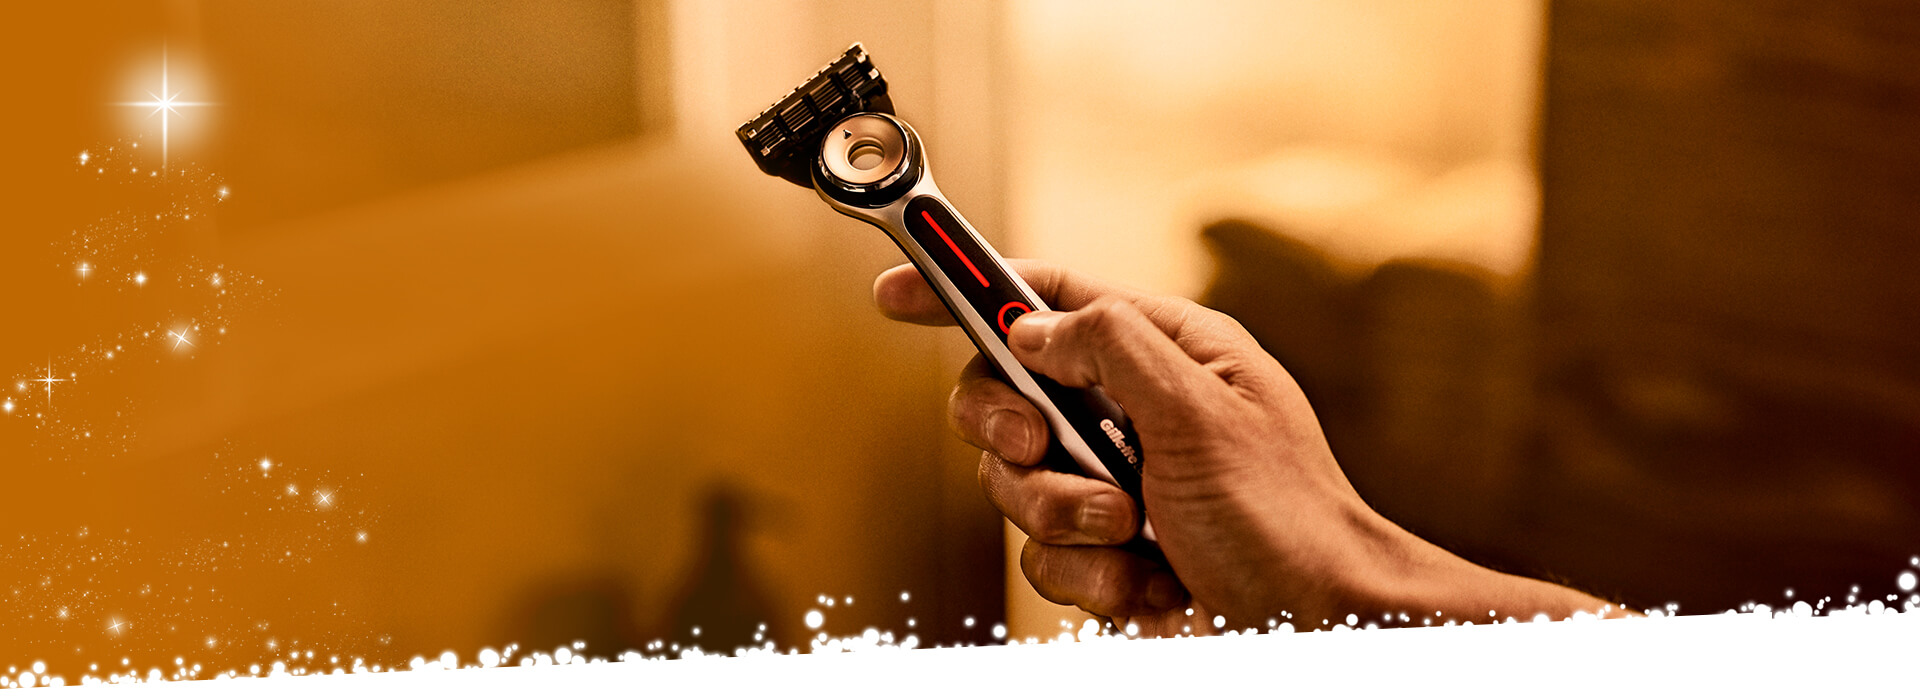 Gillette Weihnachten Heated Razor